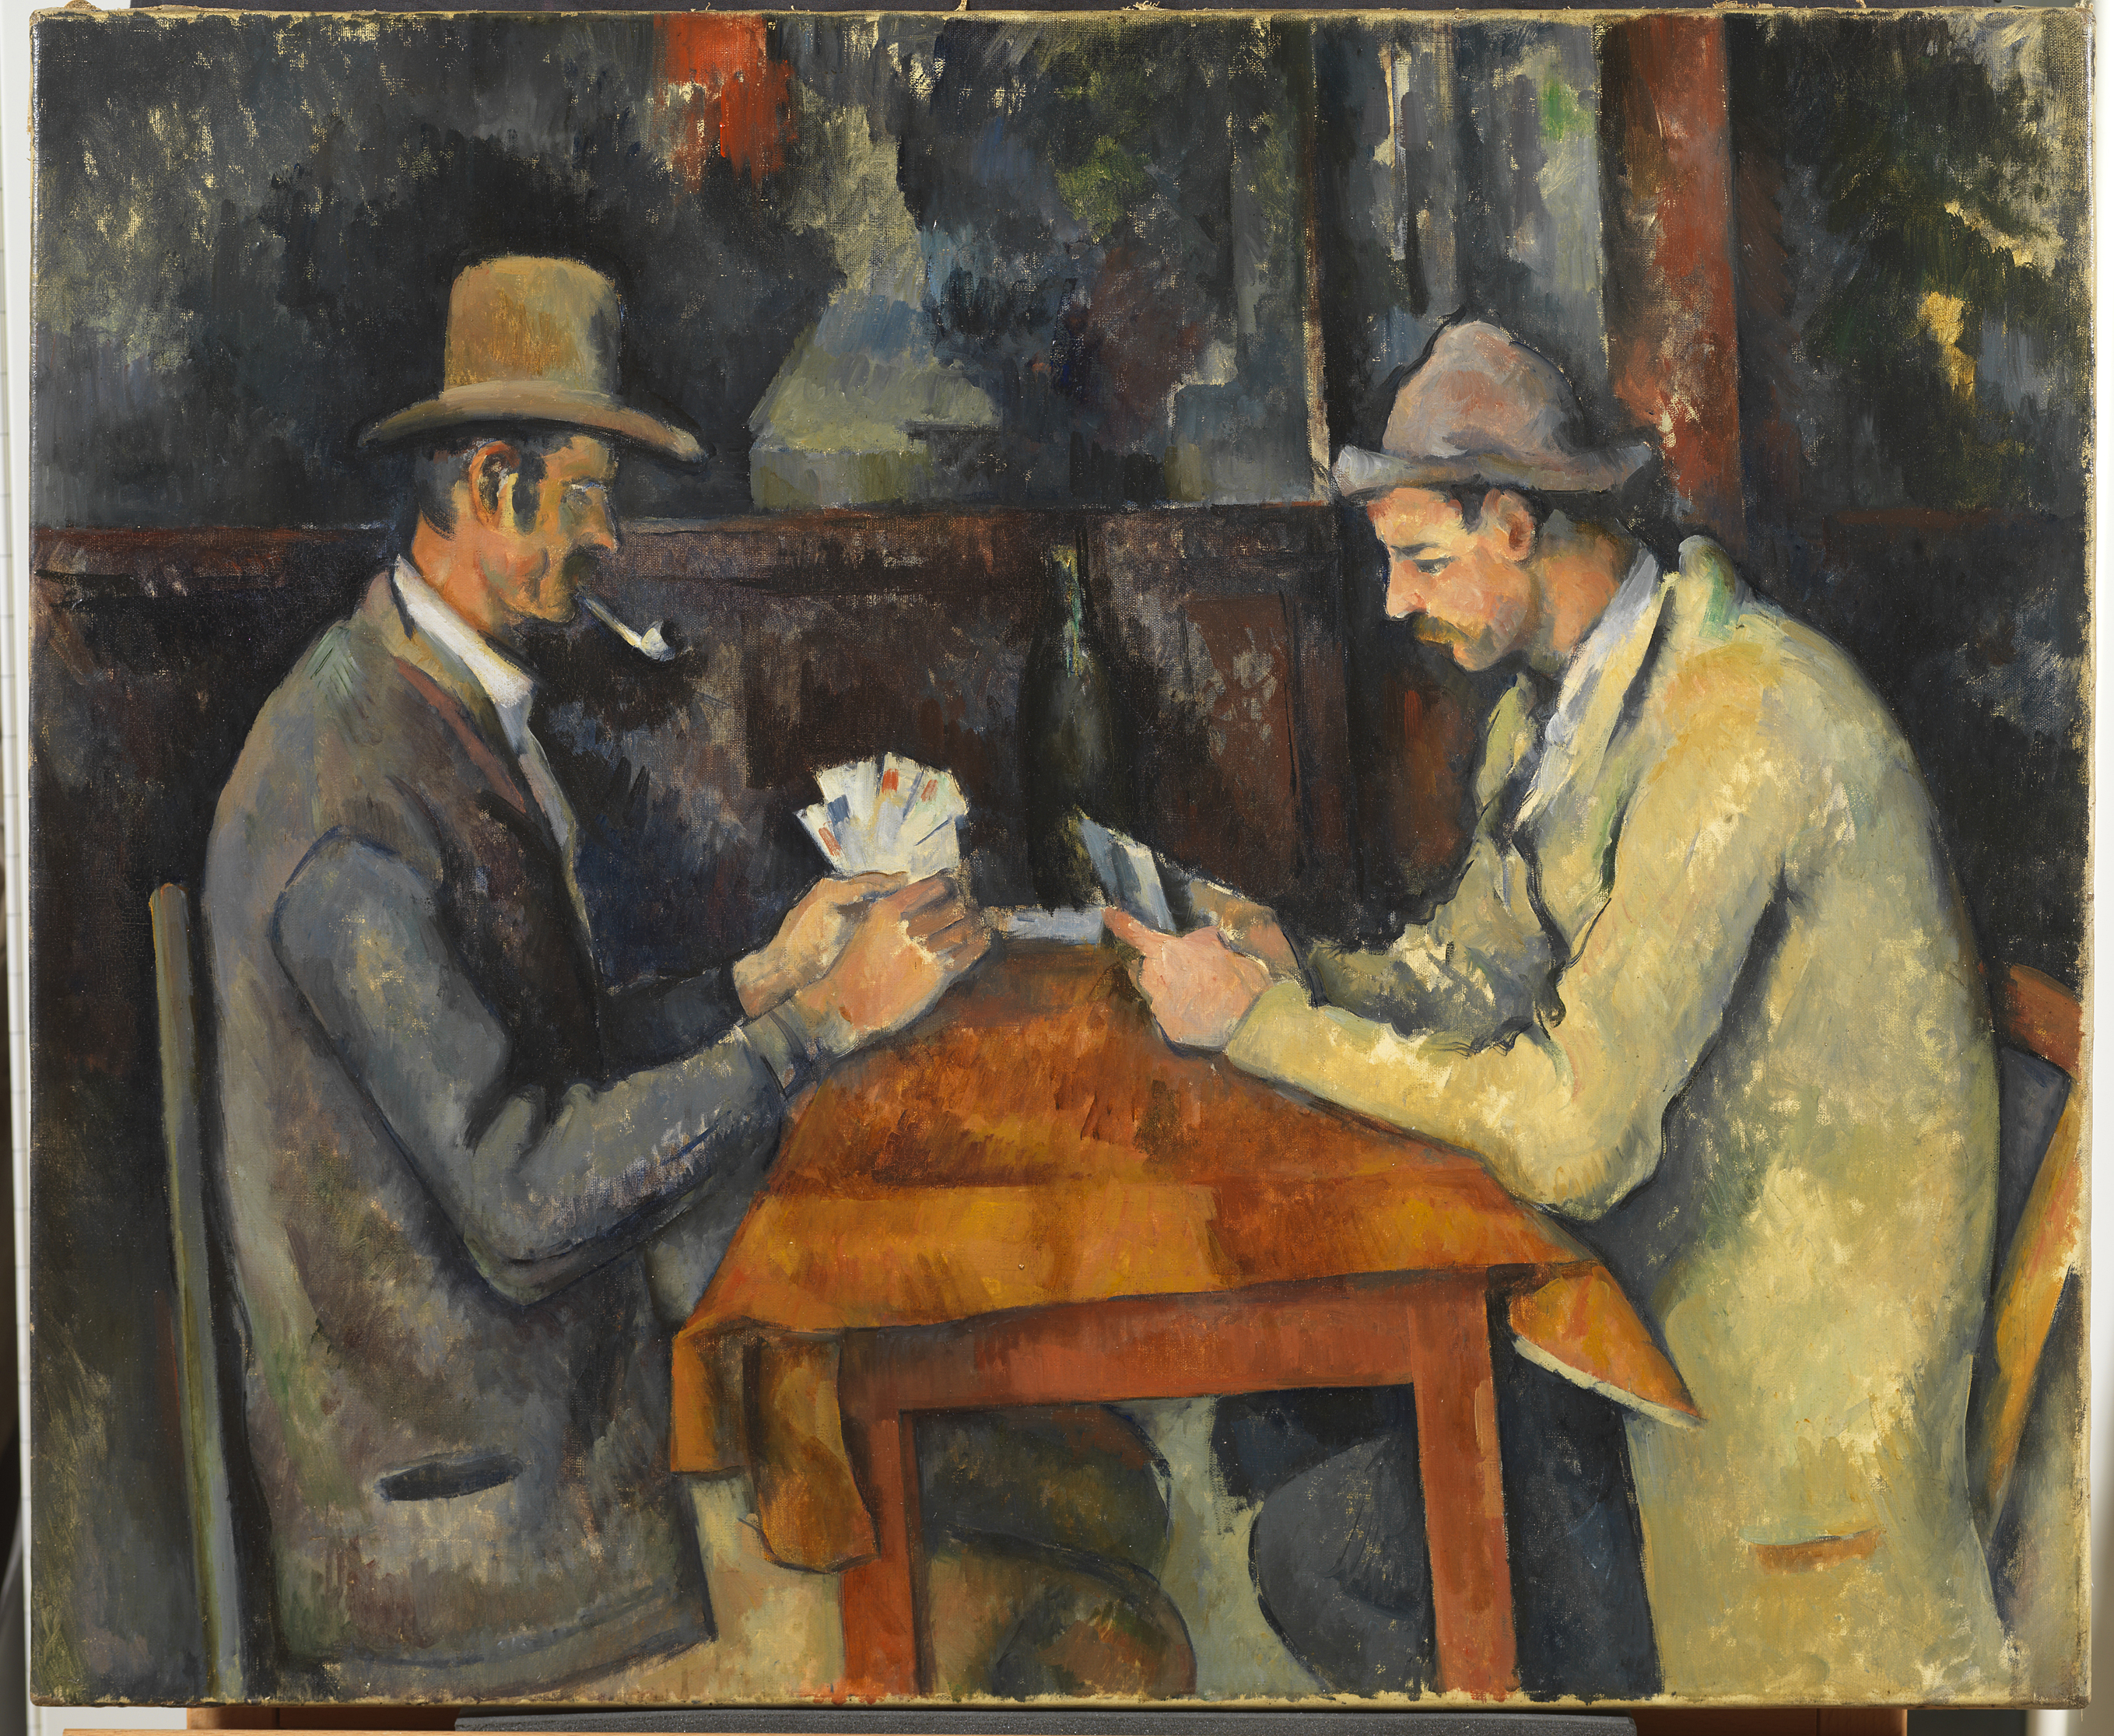 The Card Players - Paul Cézanne, c. 1892-6